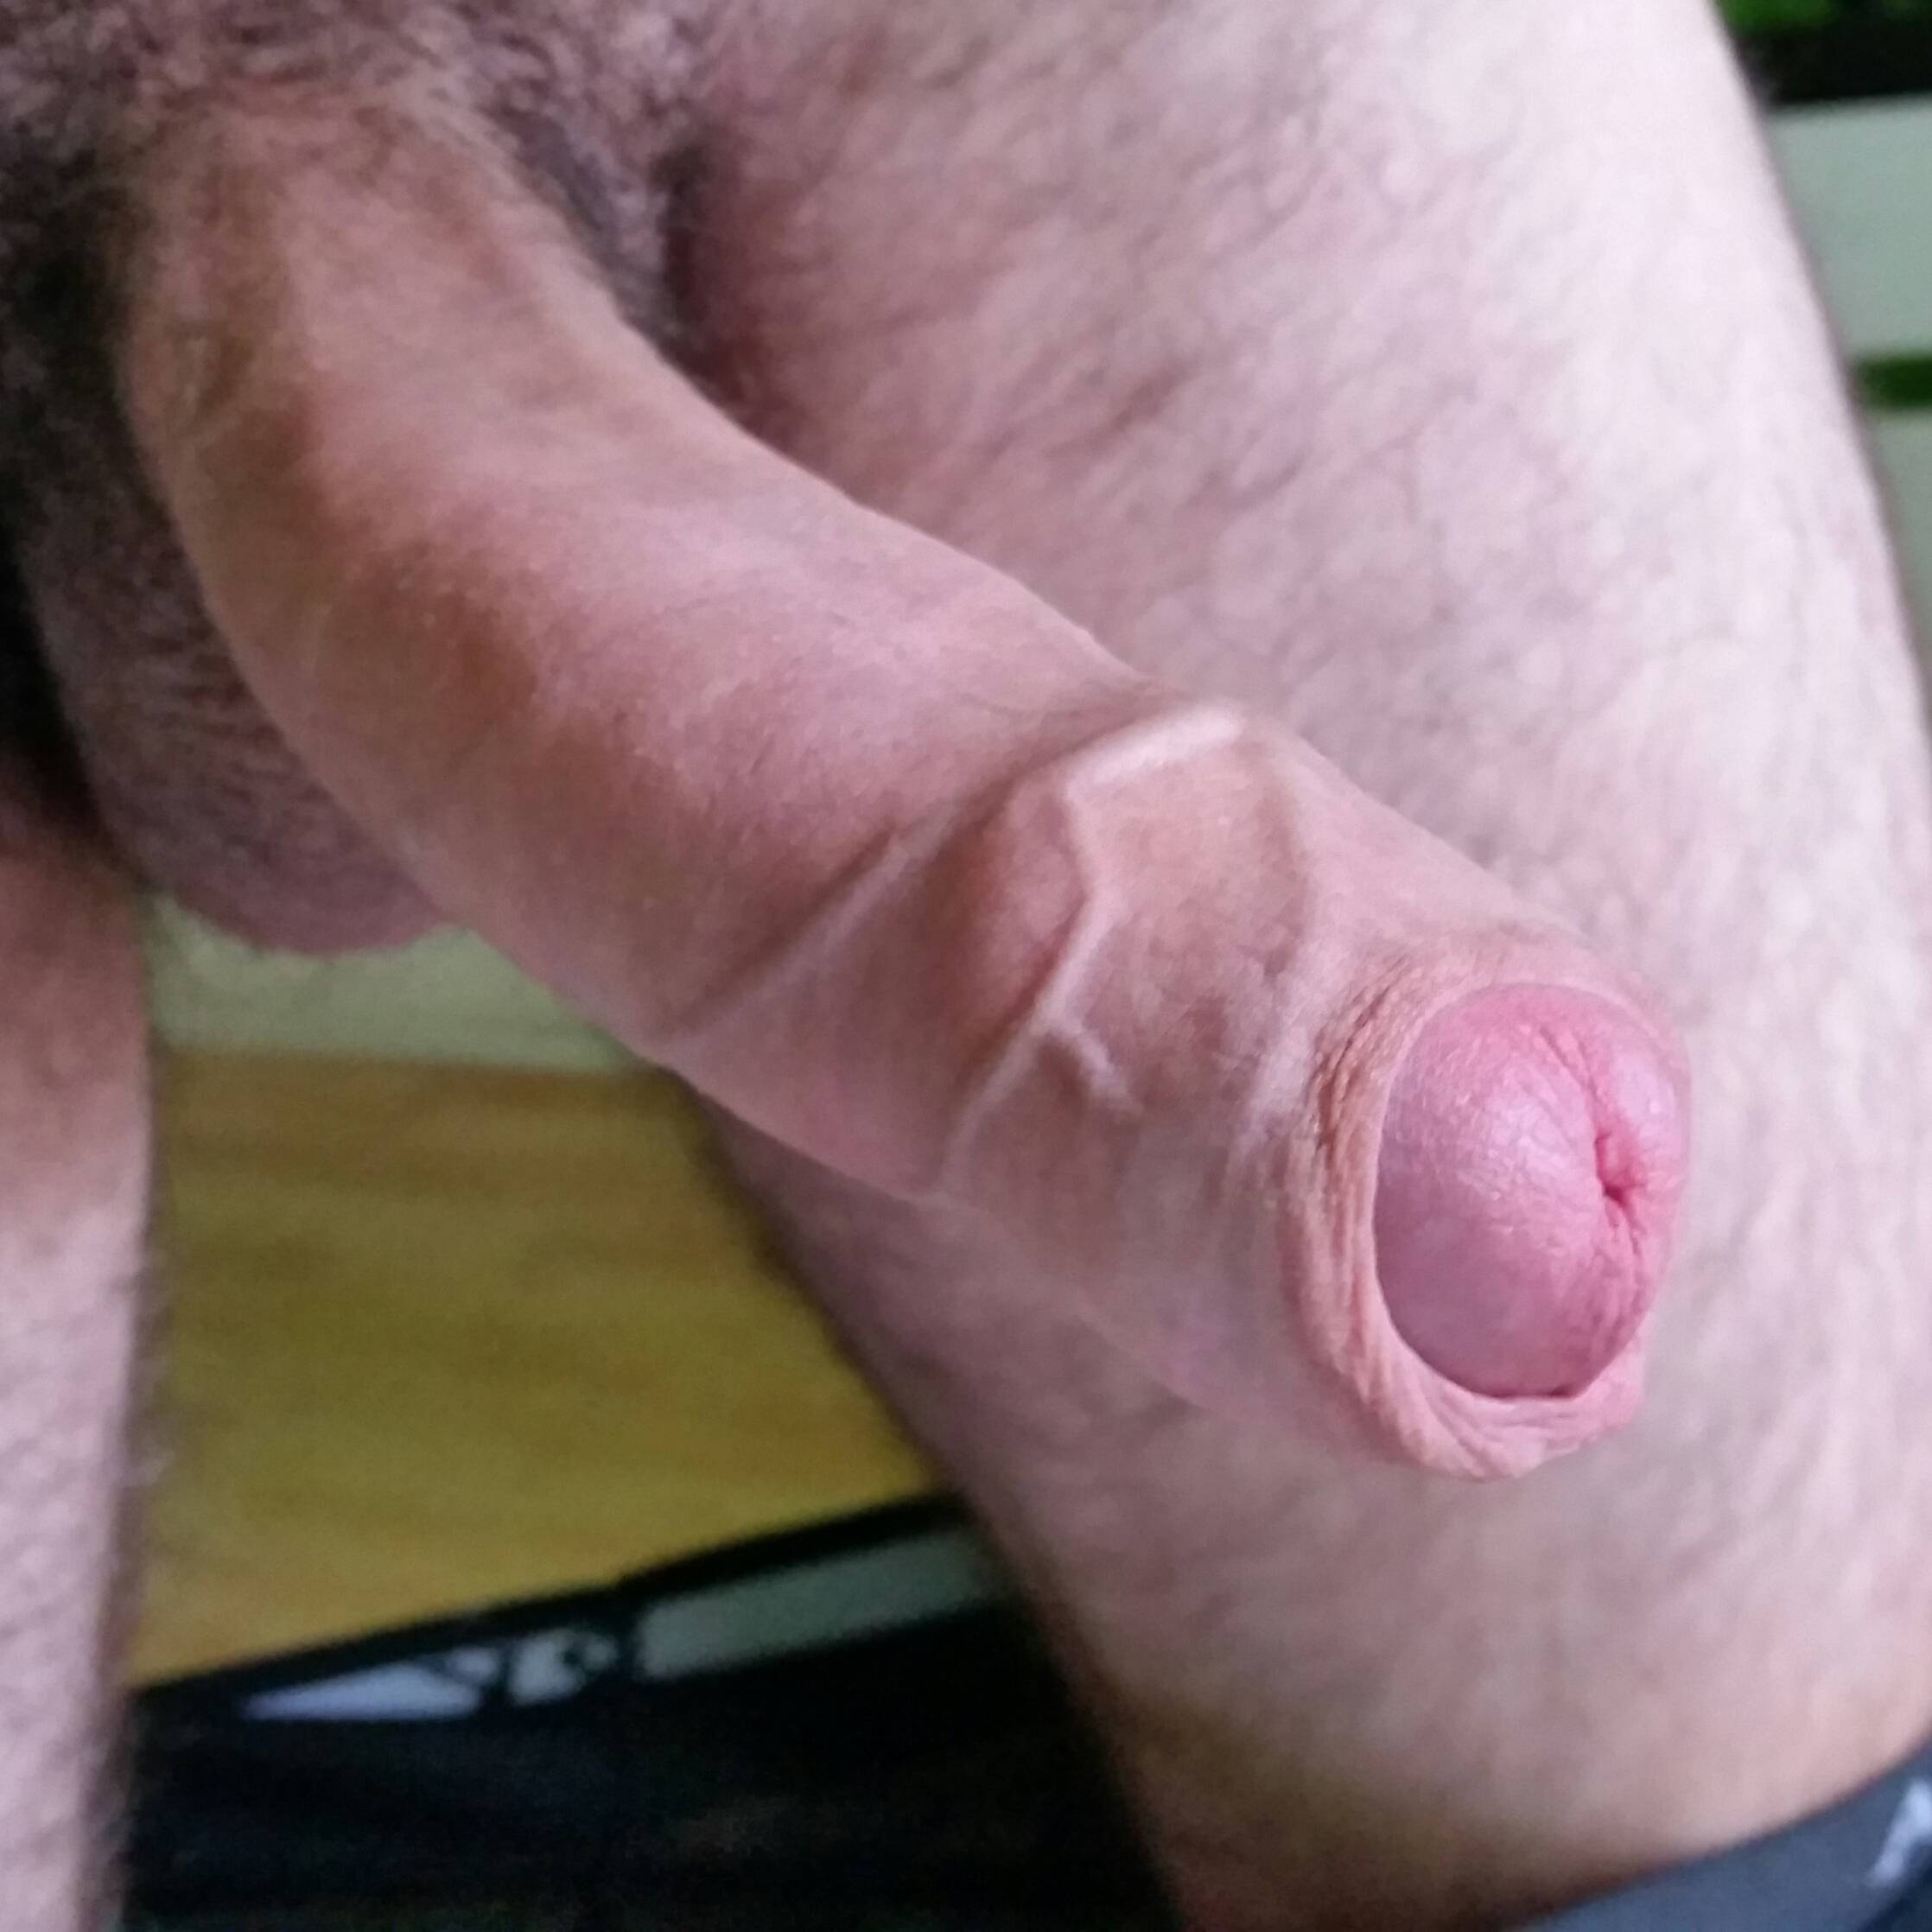 penis medical picture uncircumcised